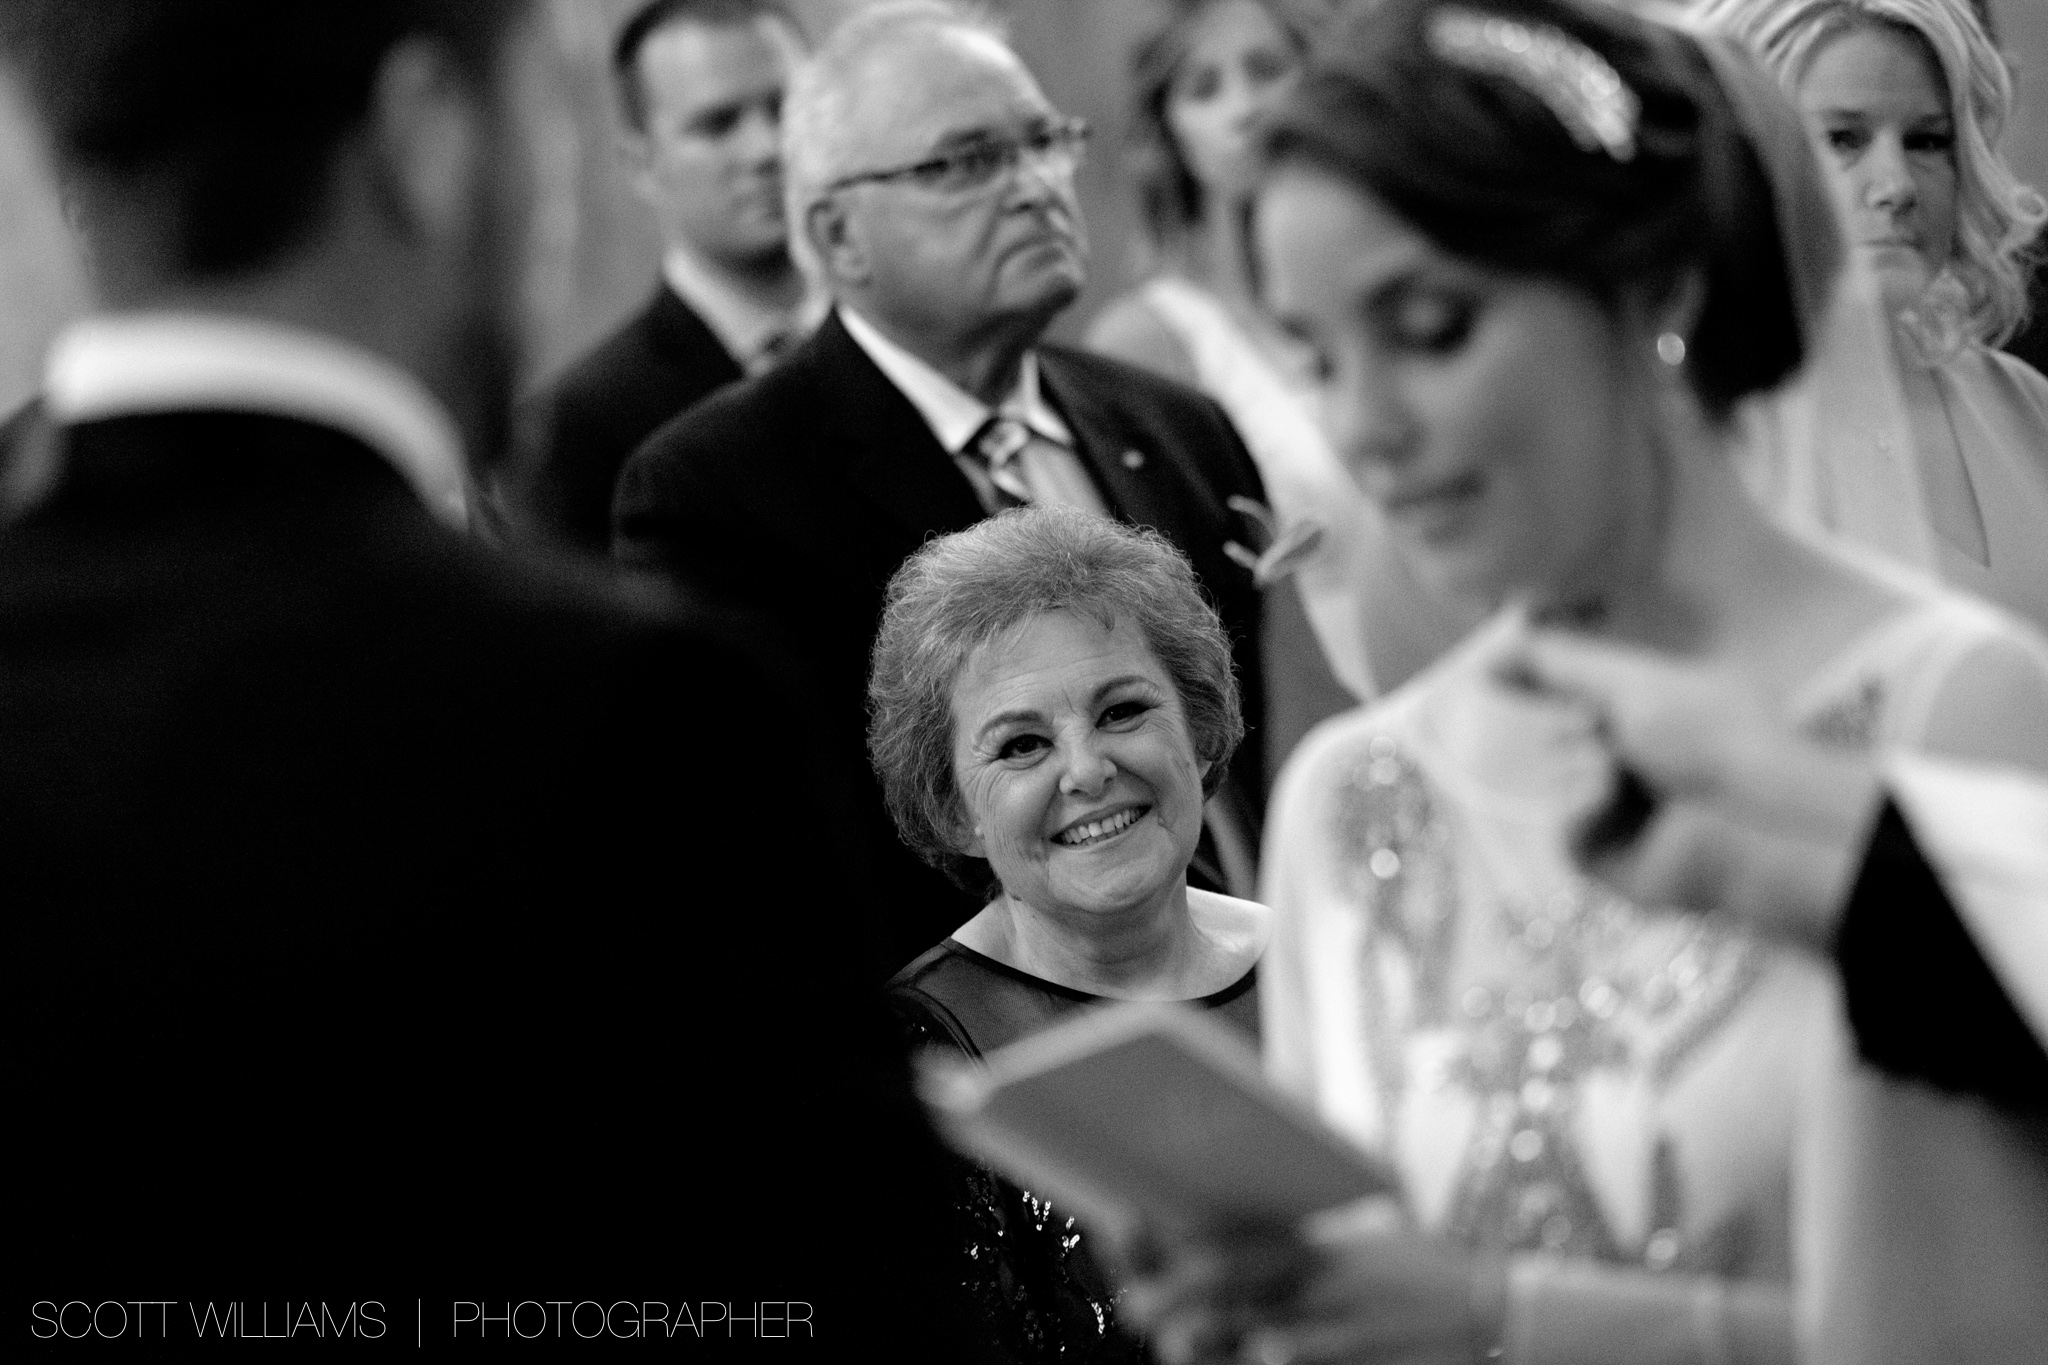 Christina's mother looks on as she and Tim exchange personal wedding vows during their Ukrainian wedding ceremony in Toronto.